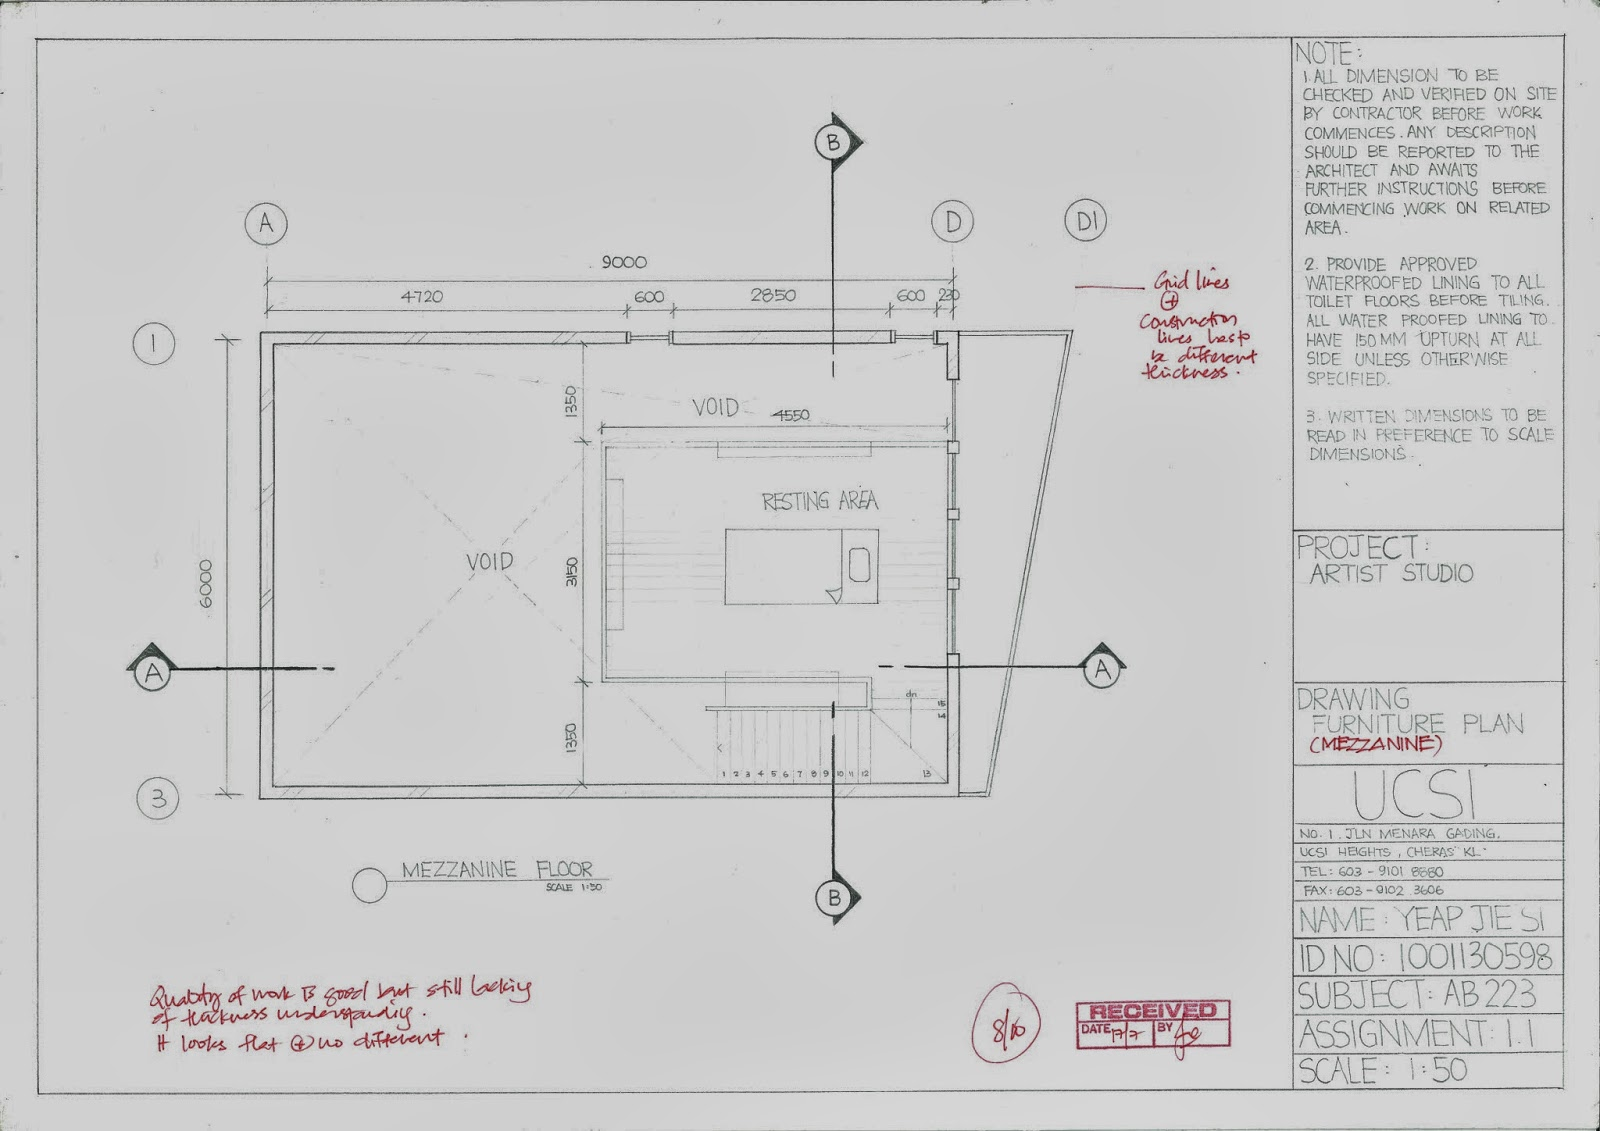 Master Piece Assignment 1 1 Orthographic Projection Mf Plan